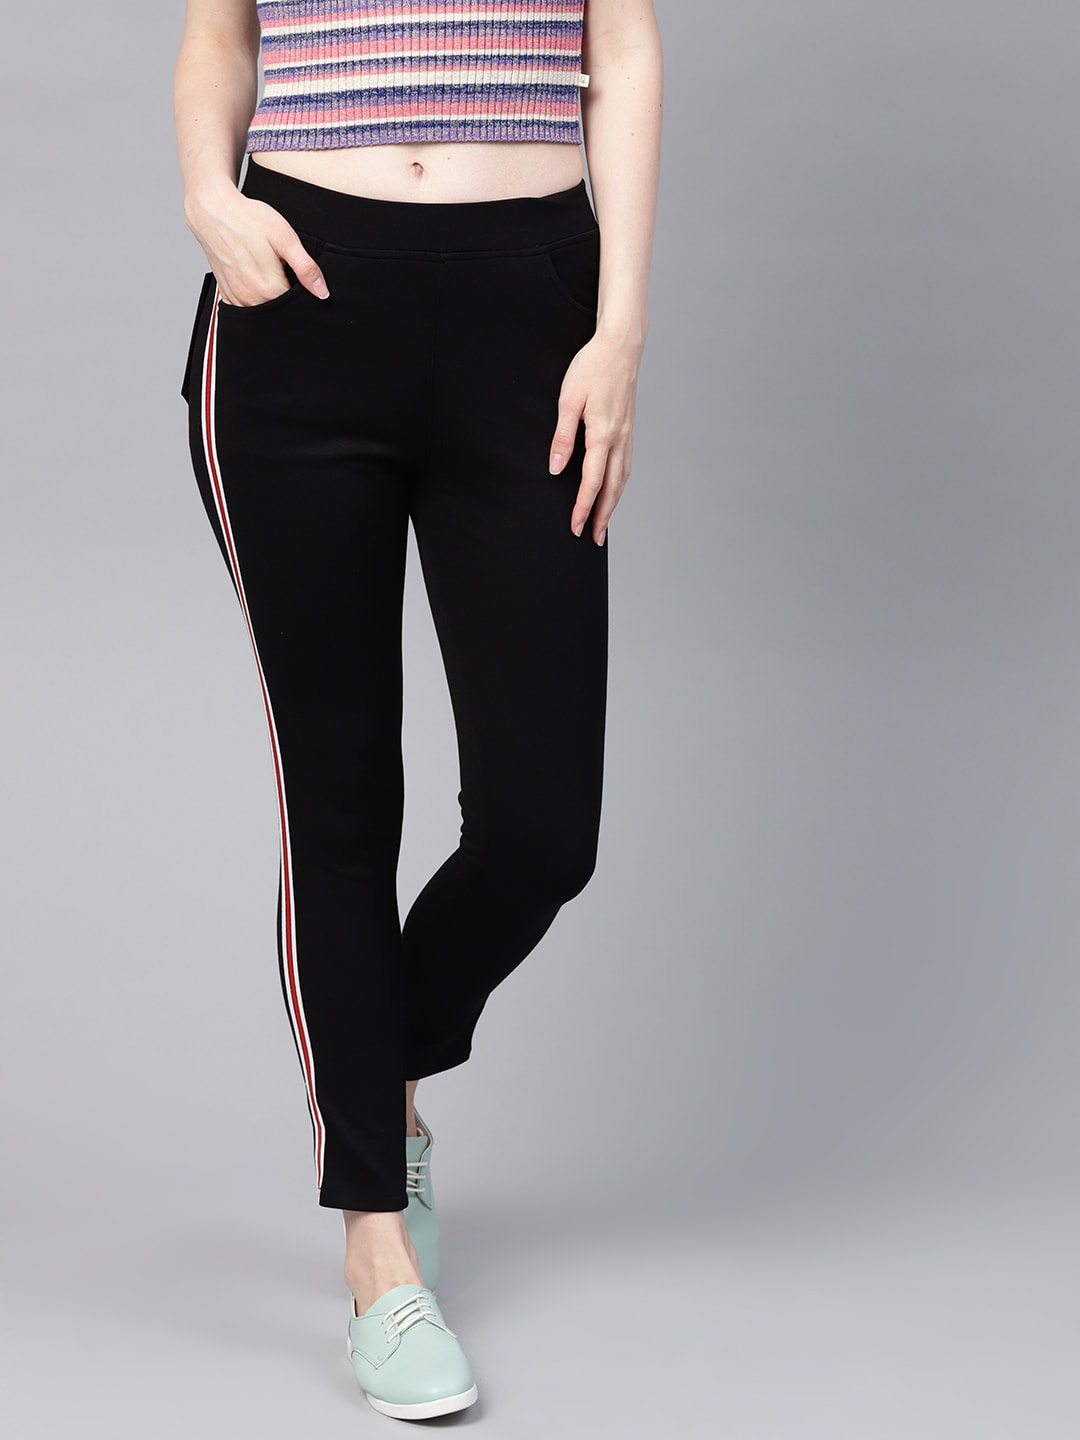 269c346522 Jeggings - Buy Jeggings For Women Online from Myntra